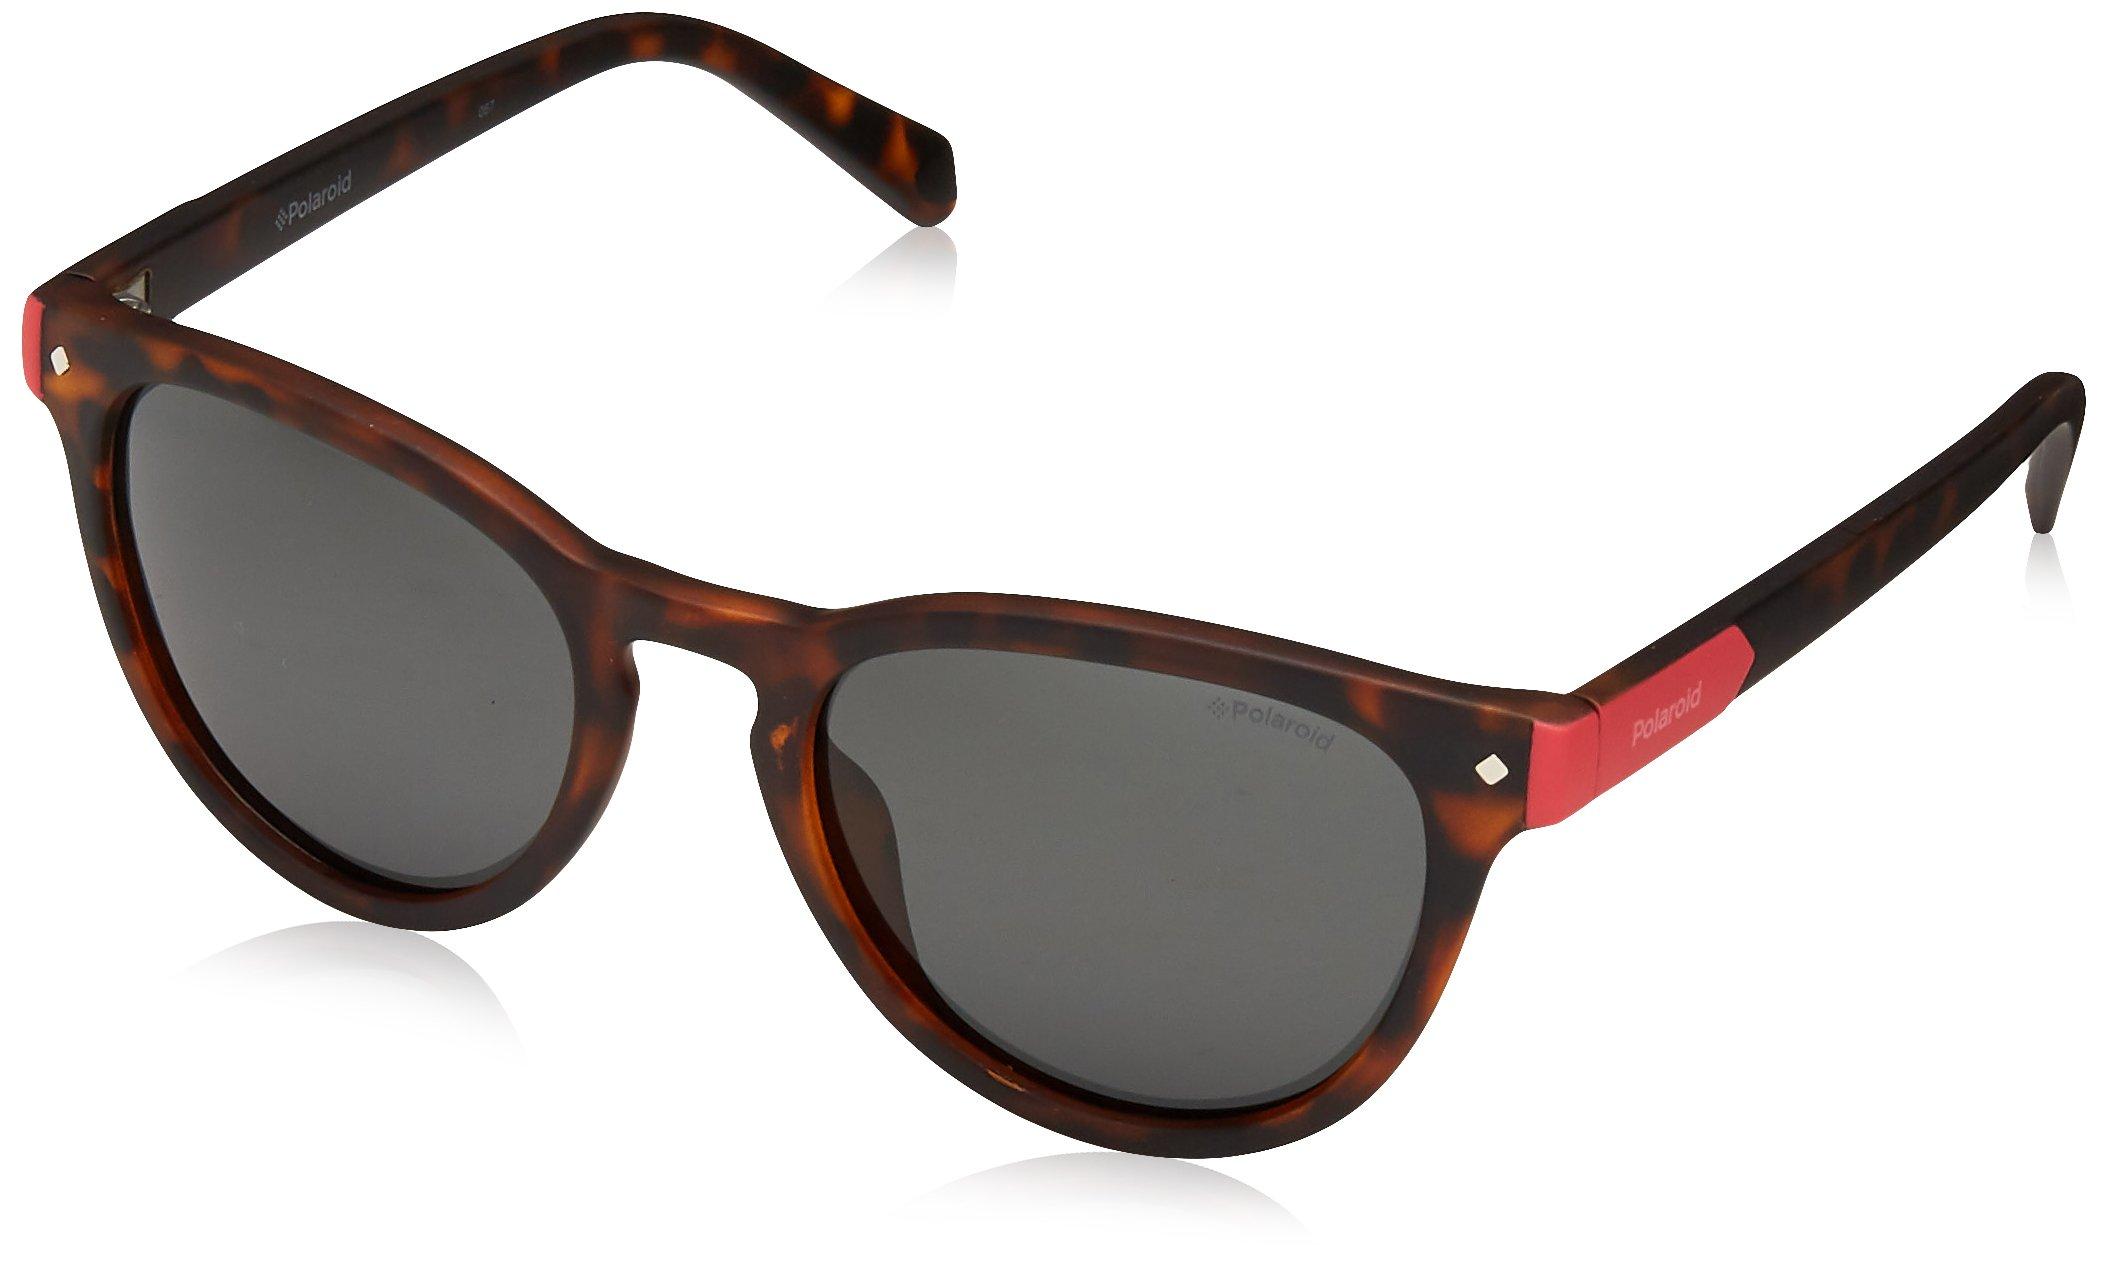 Polaroid Sunglasses Girls' Pld8026s Polarized Oval Sunglasses, DKHAVANA, 47 mm by Polaroid Sunglasses (Image #1)